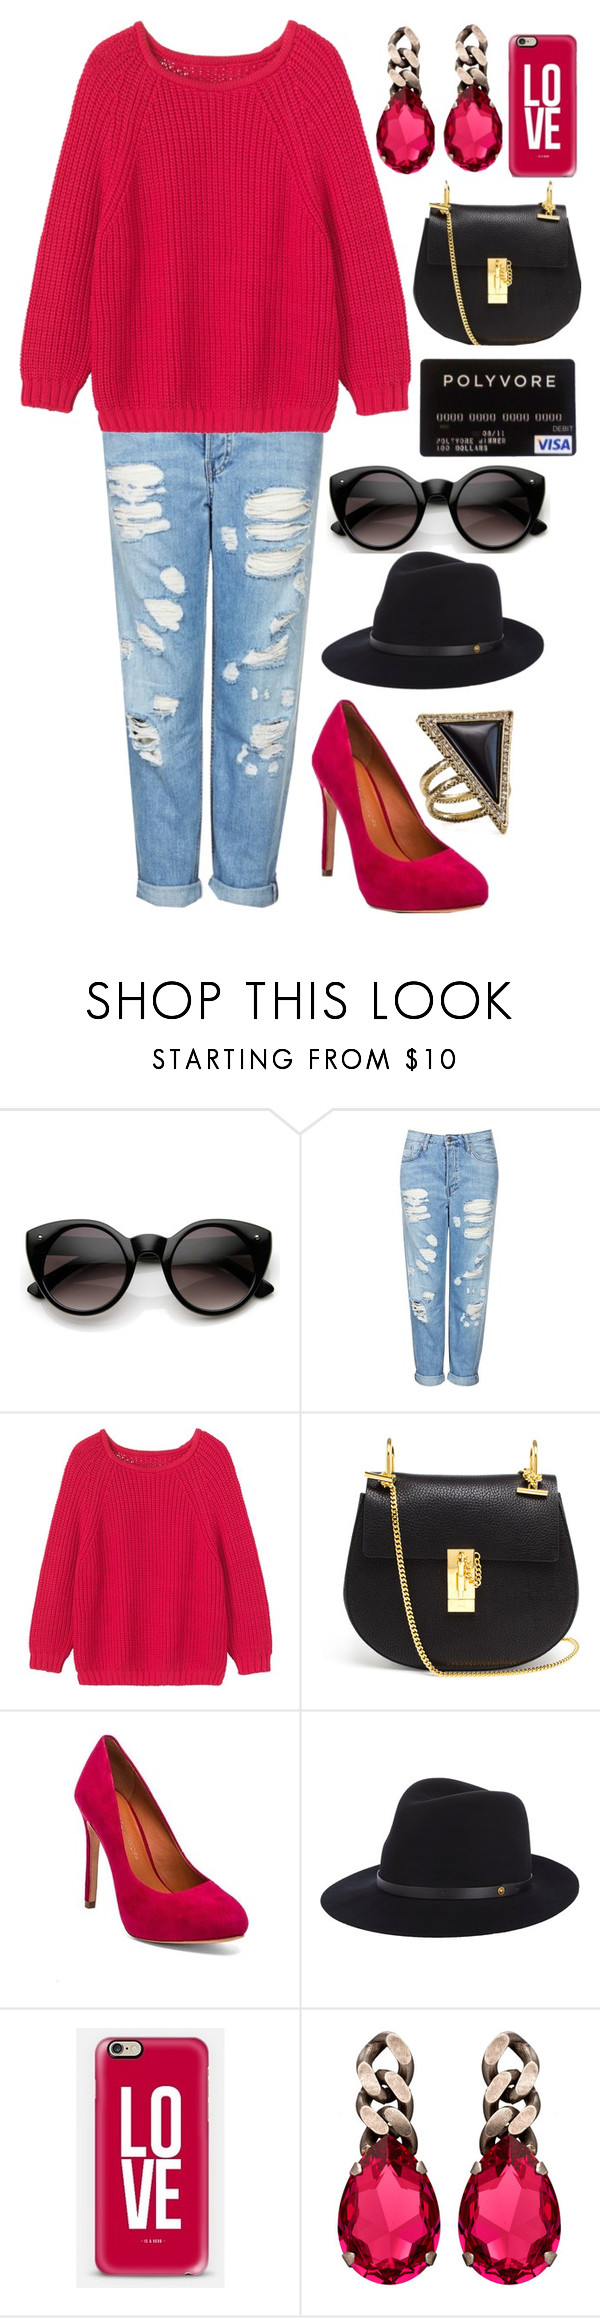 """Bright Casual Outfit"" by loveselena22 ❤ liked on Polyvore featuring ZeroUV, Topshop, Toast, Chloé, Rebecca Minkoff, rag & bone, Janis Savitt and House of Harlow 1960"